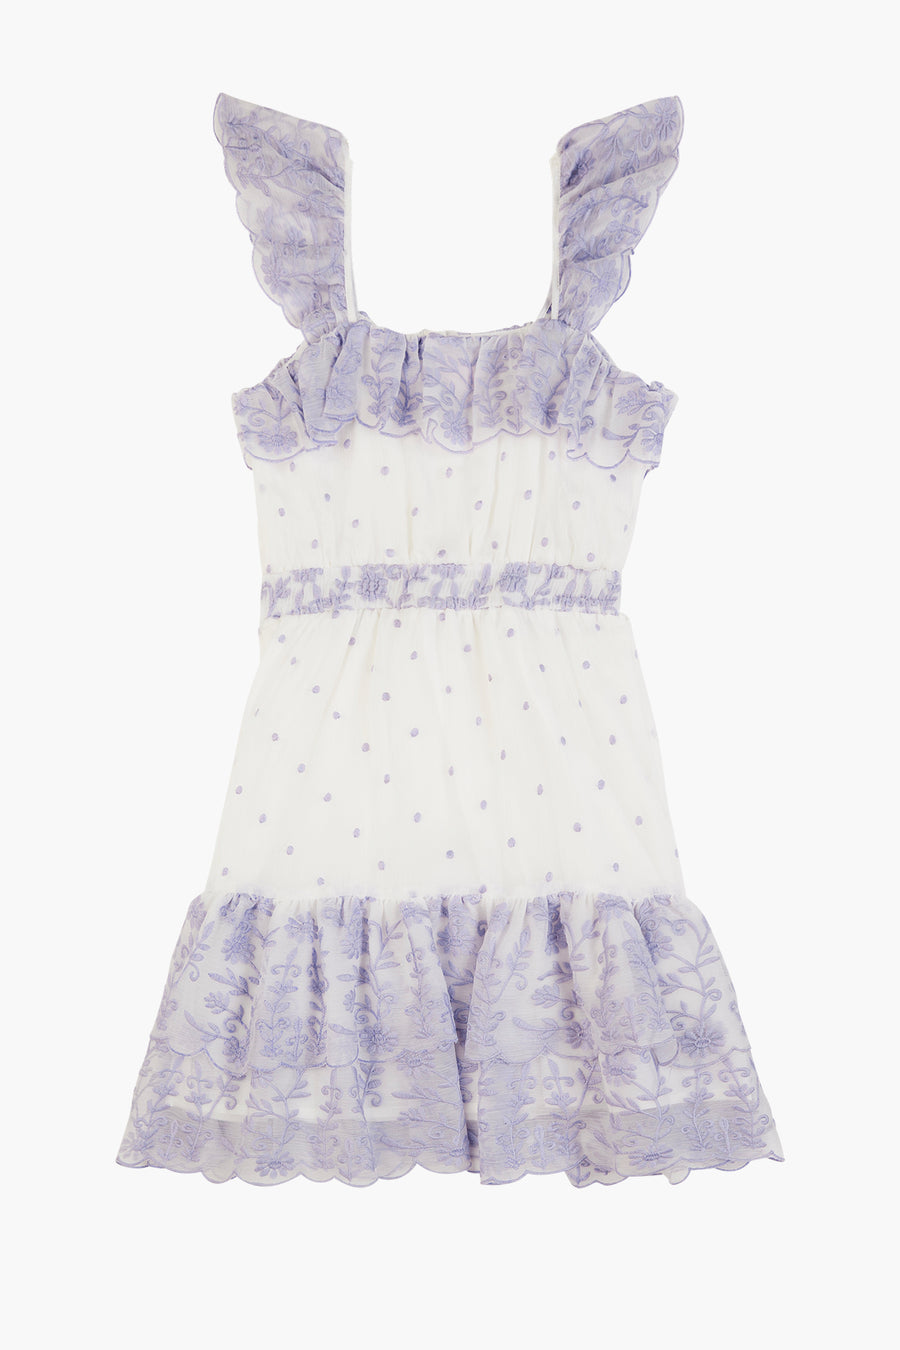 Marlo Rosie Girls Dress - Lavender